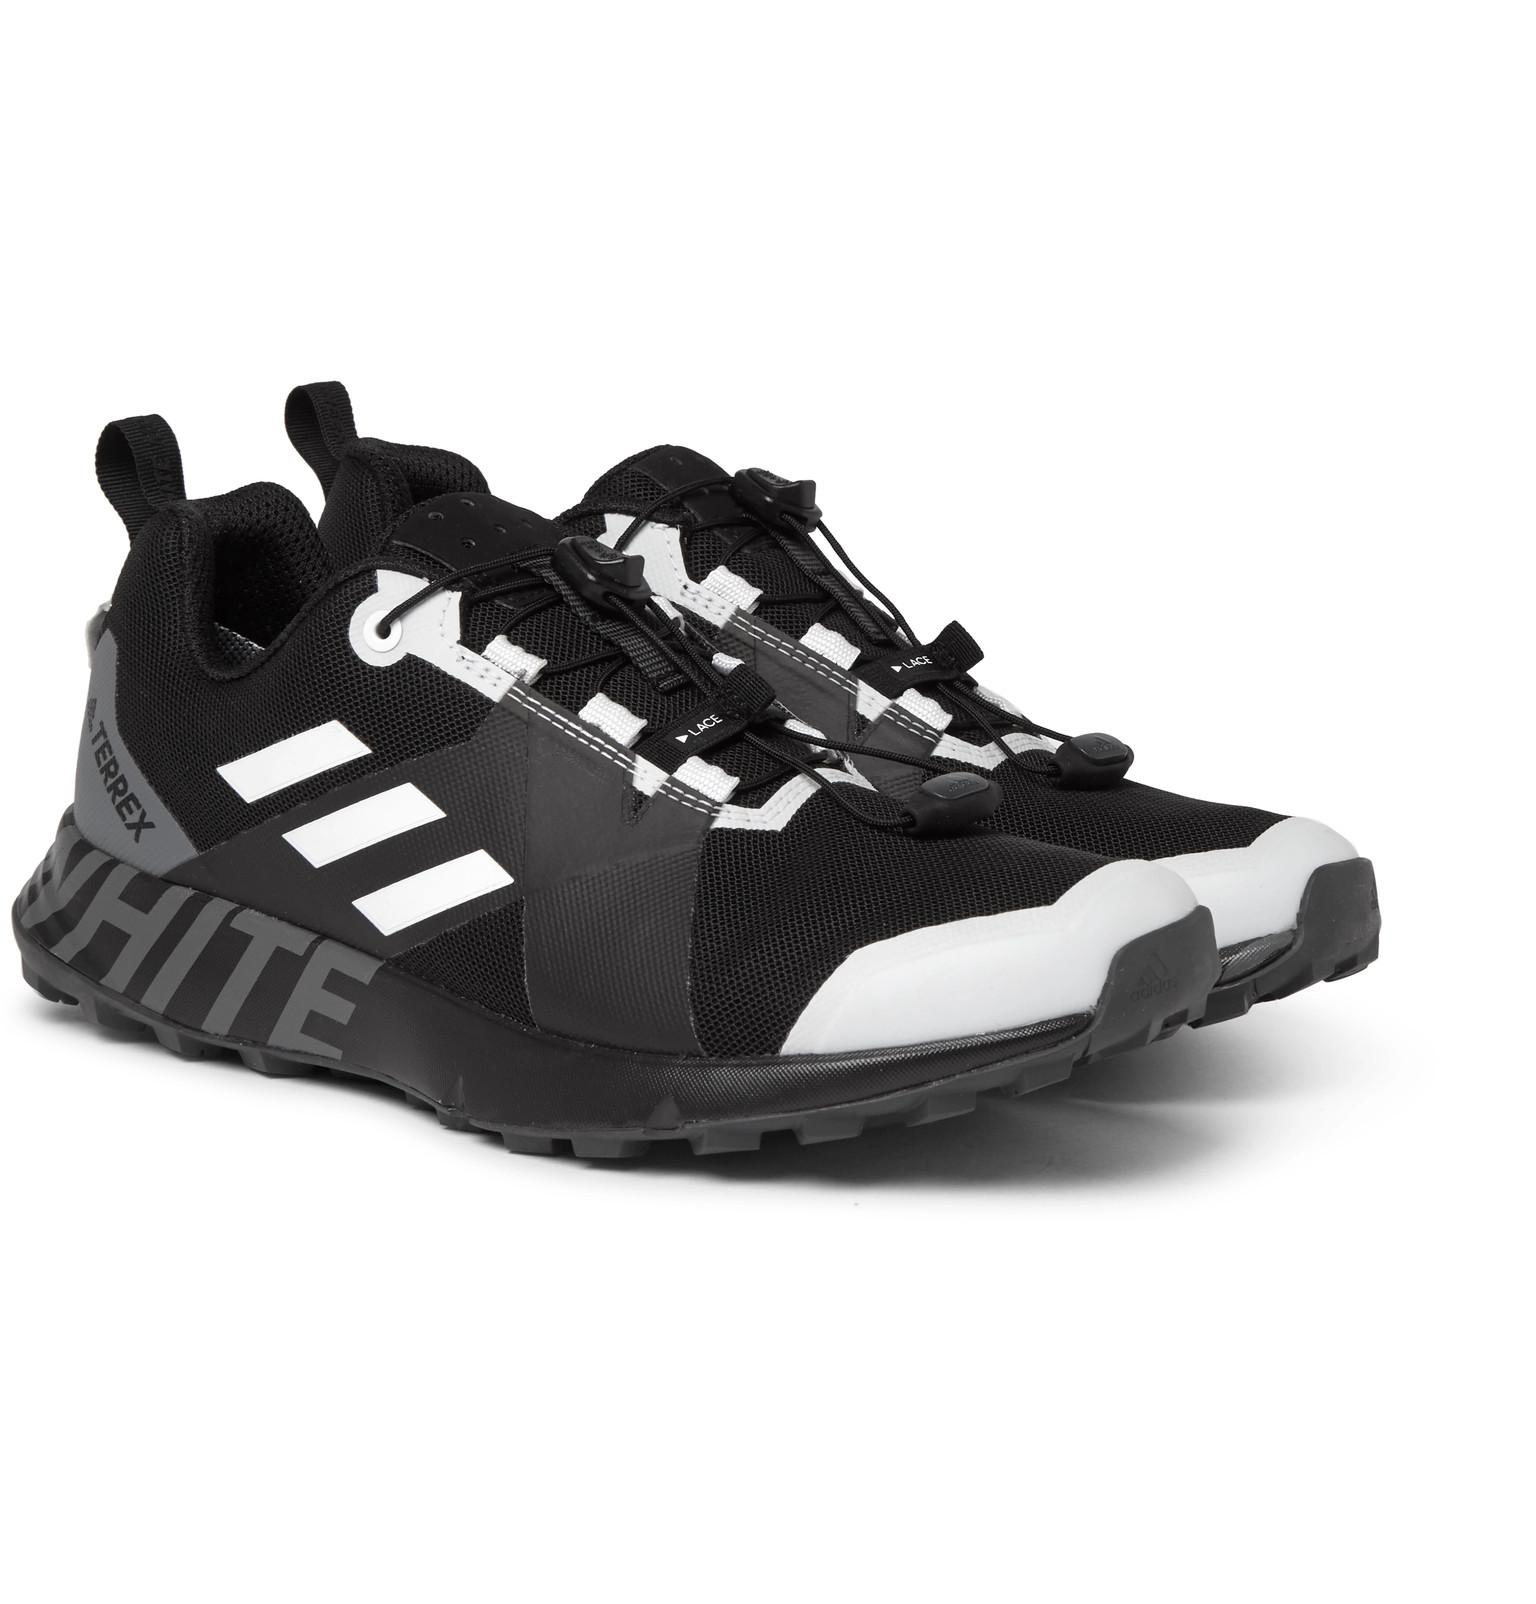 8a2d4426f5f9b2 adidas Originals + White Mountaineering Terrex Two Gore-tex And Mesh ...